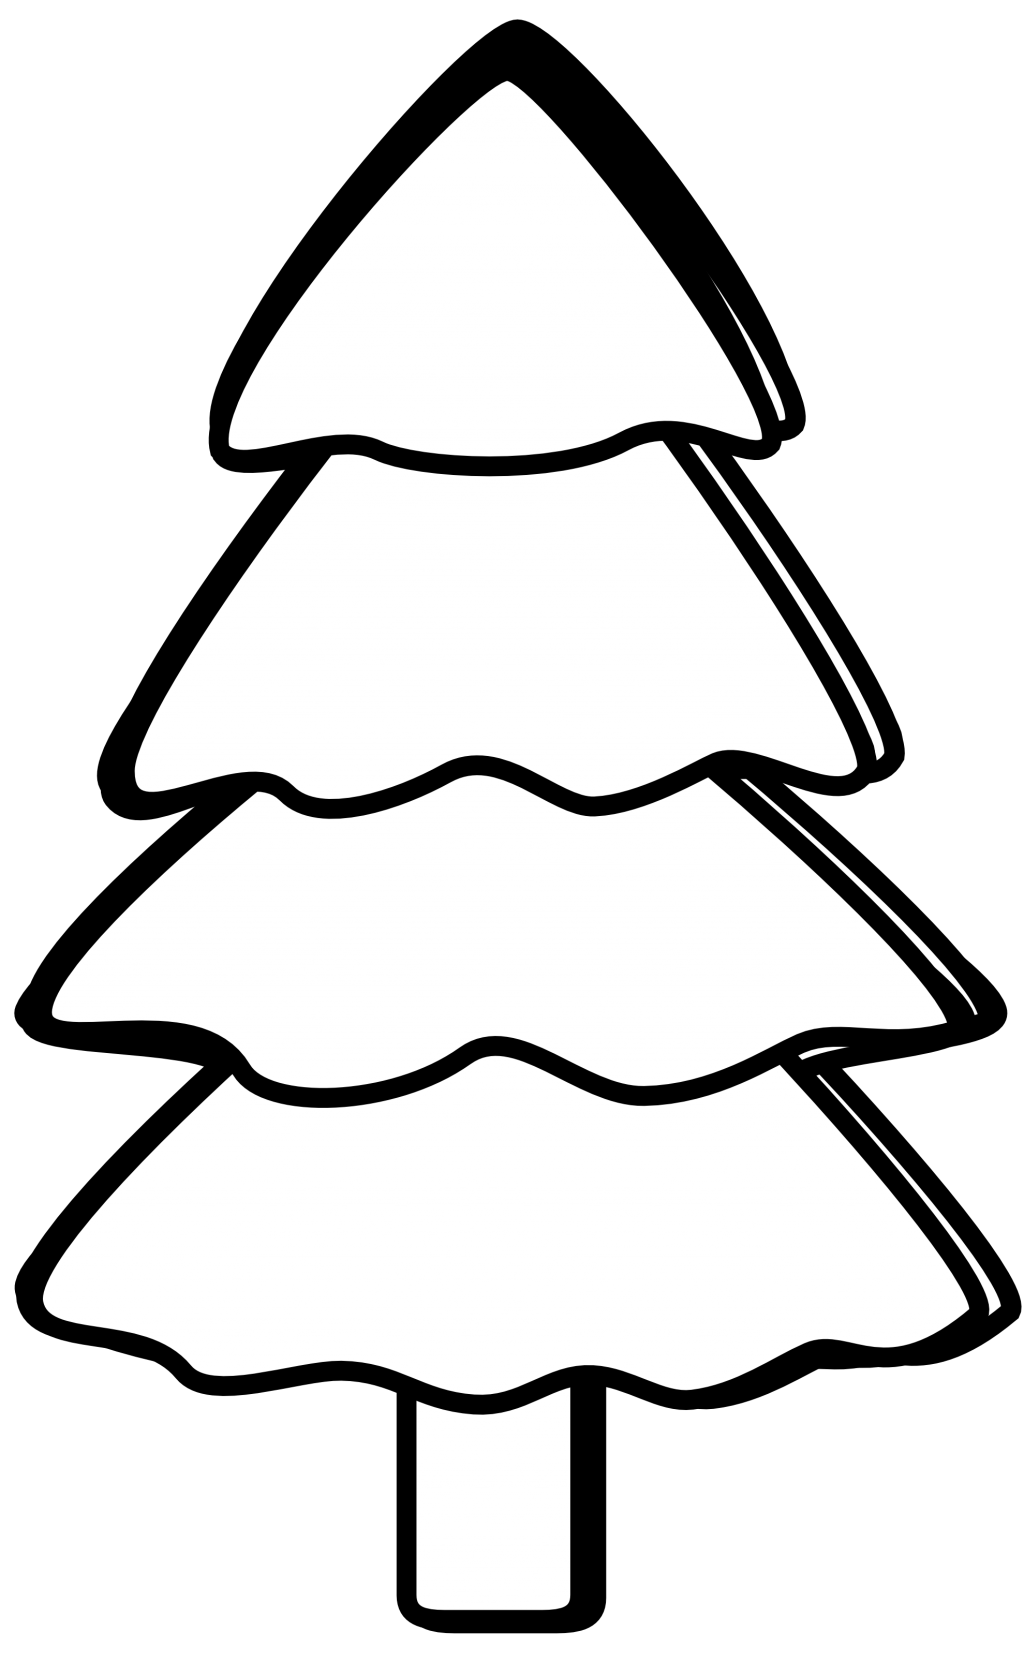 Christmas tree clipart black white graphic baby nursery ~ Charming Black And White Xmas Tree Clipart Kid ... graphic